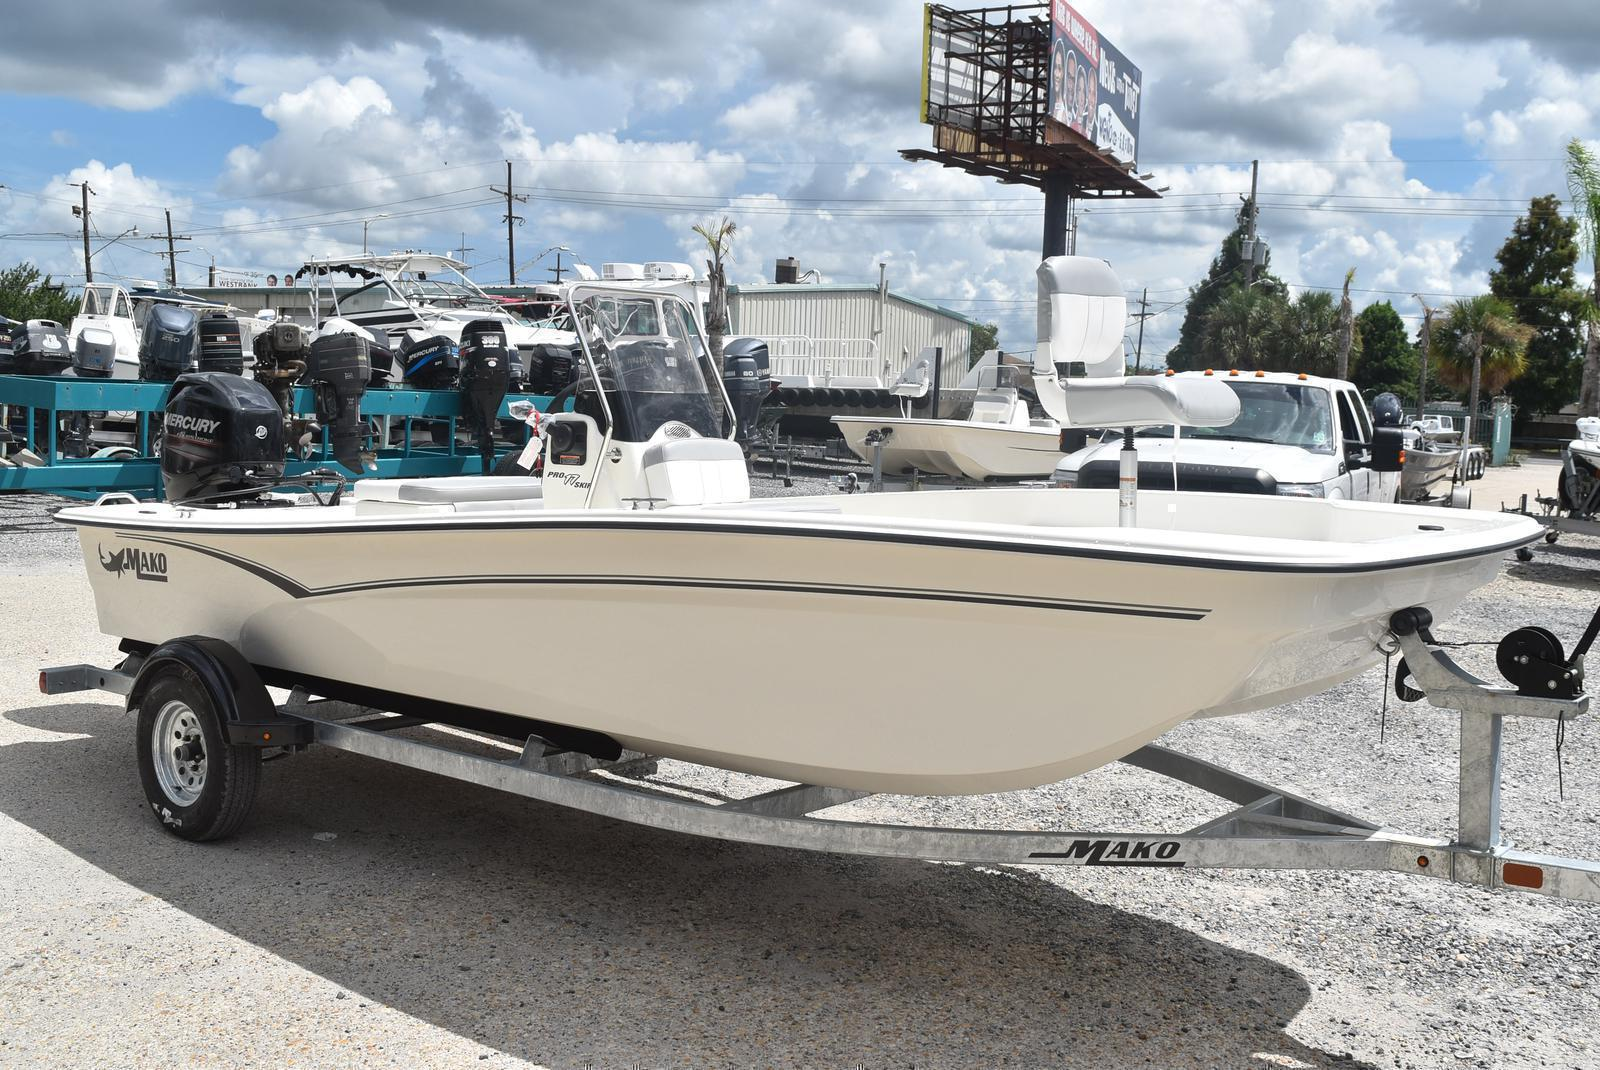 2020 Mako boat for sale, model of the boat is Pro Skiff 17, 75 ELPT & Image # 688 of 702